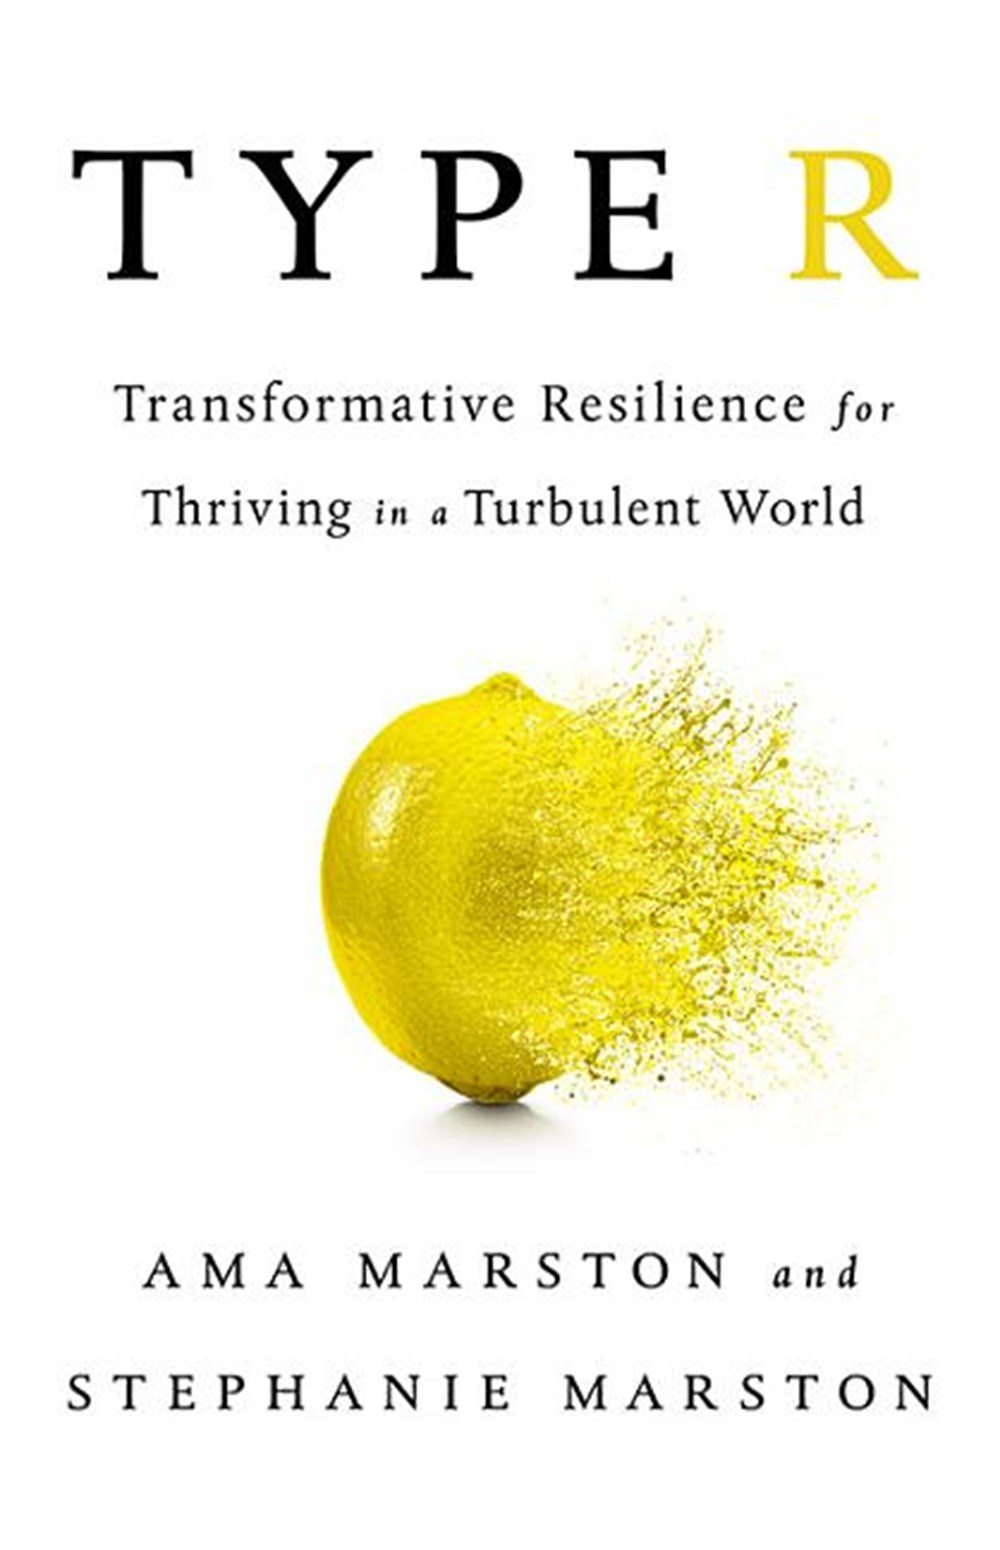 Type R Transformative Resilience for Thriving in a Turbulent World